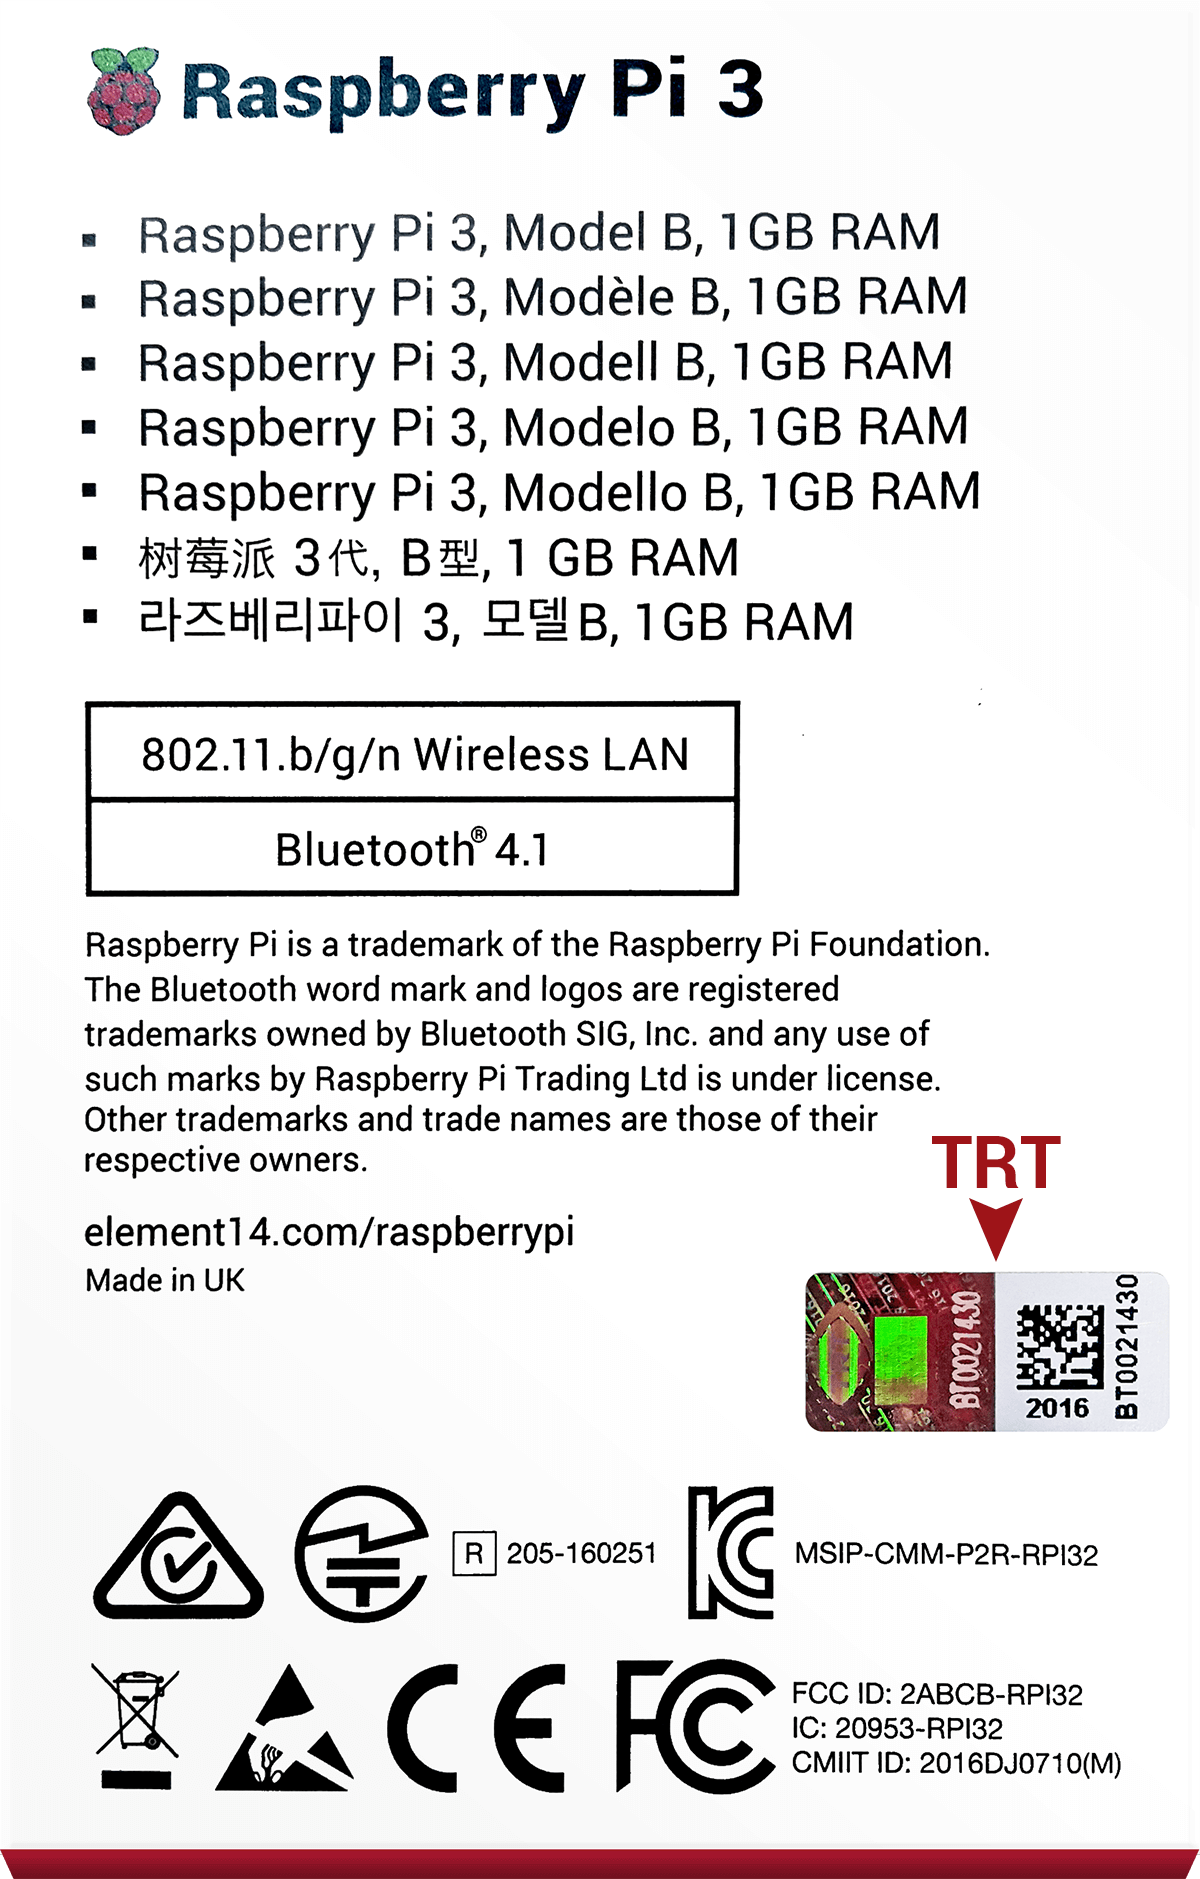 The TRT customs sticker will be on Raspberry Pi retail boxes